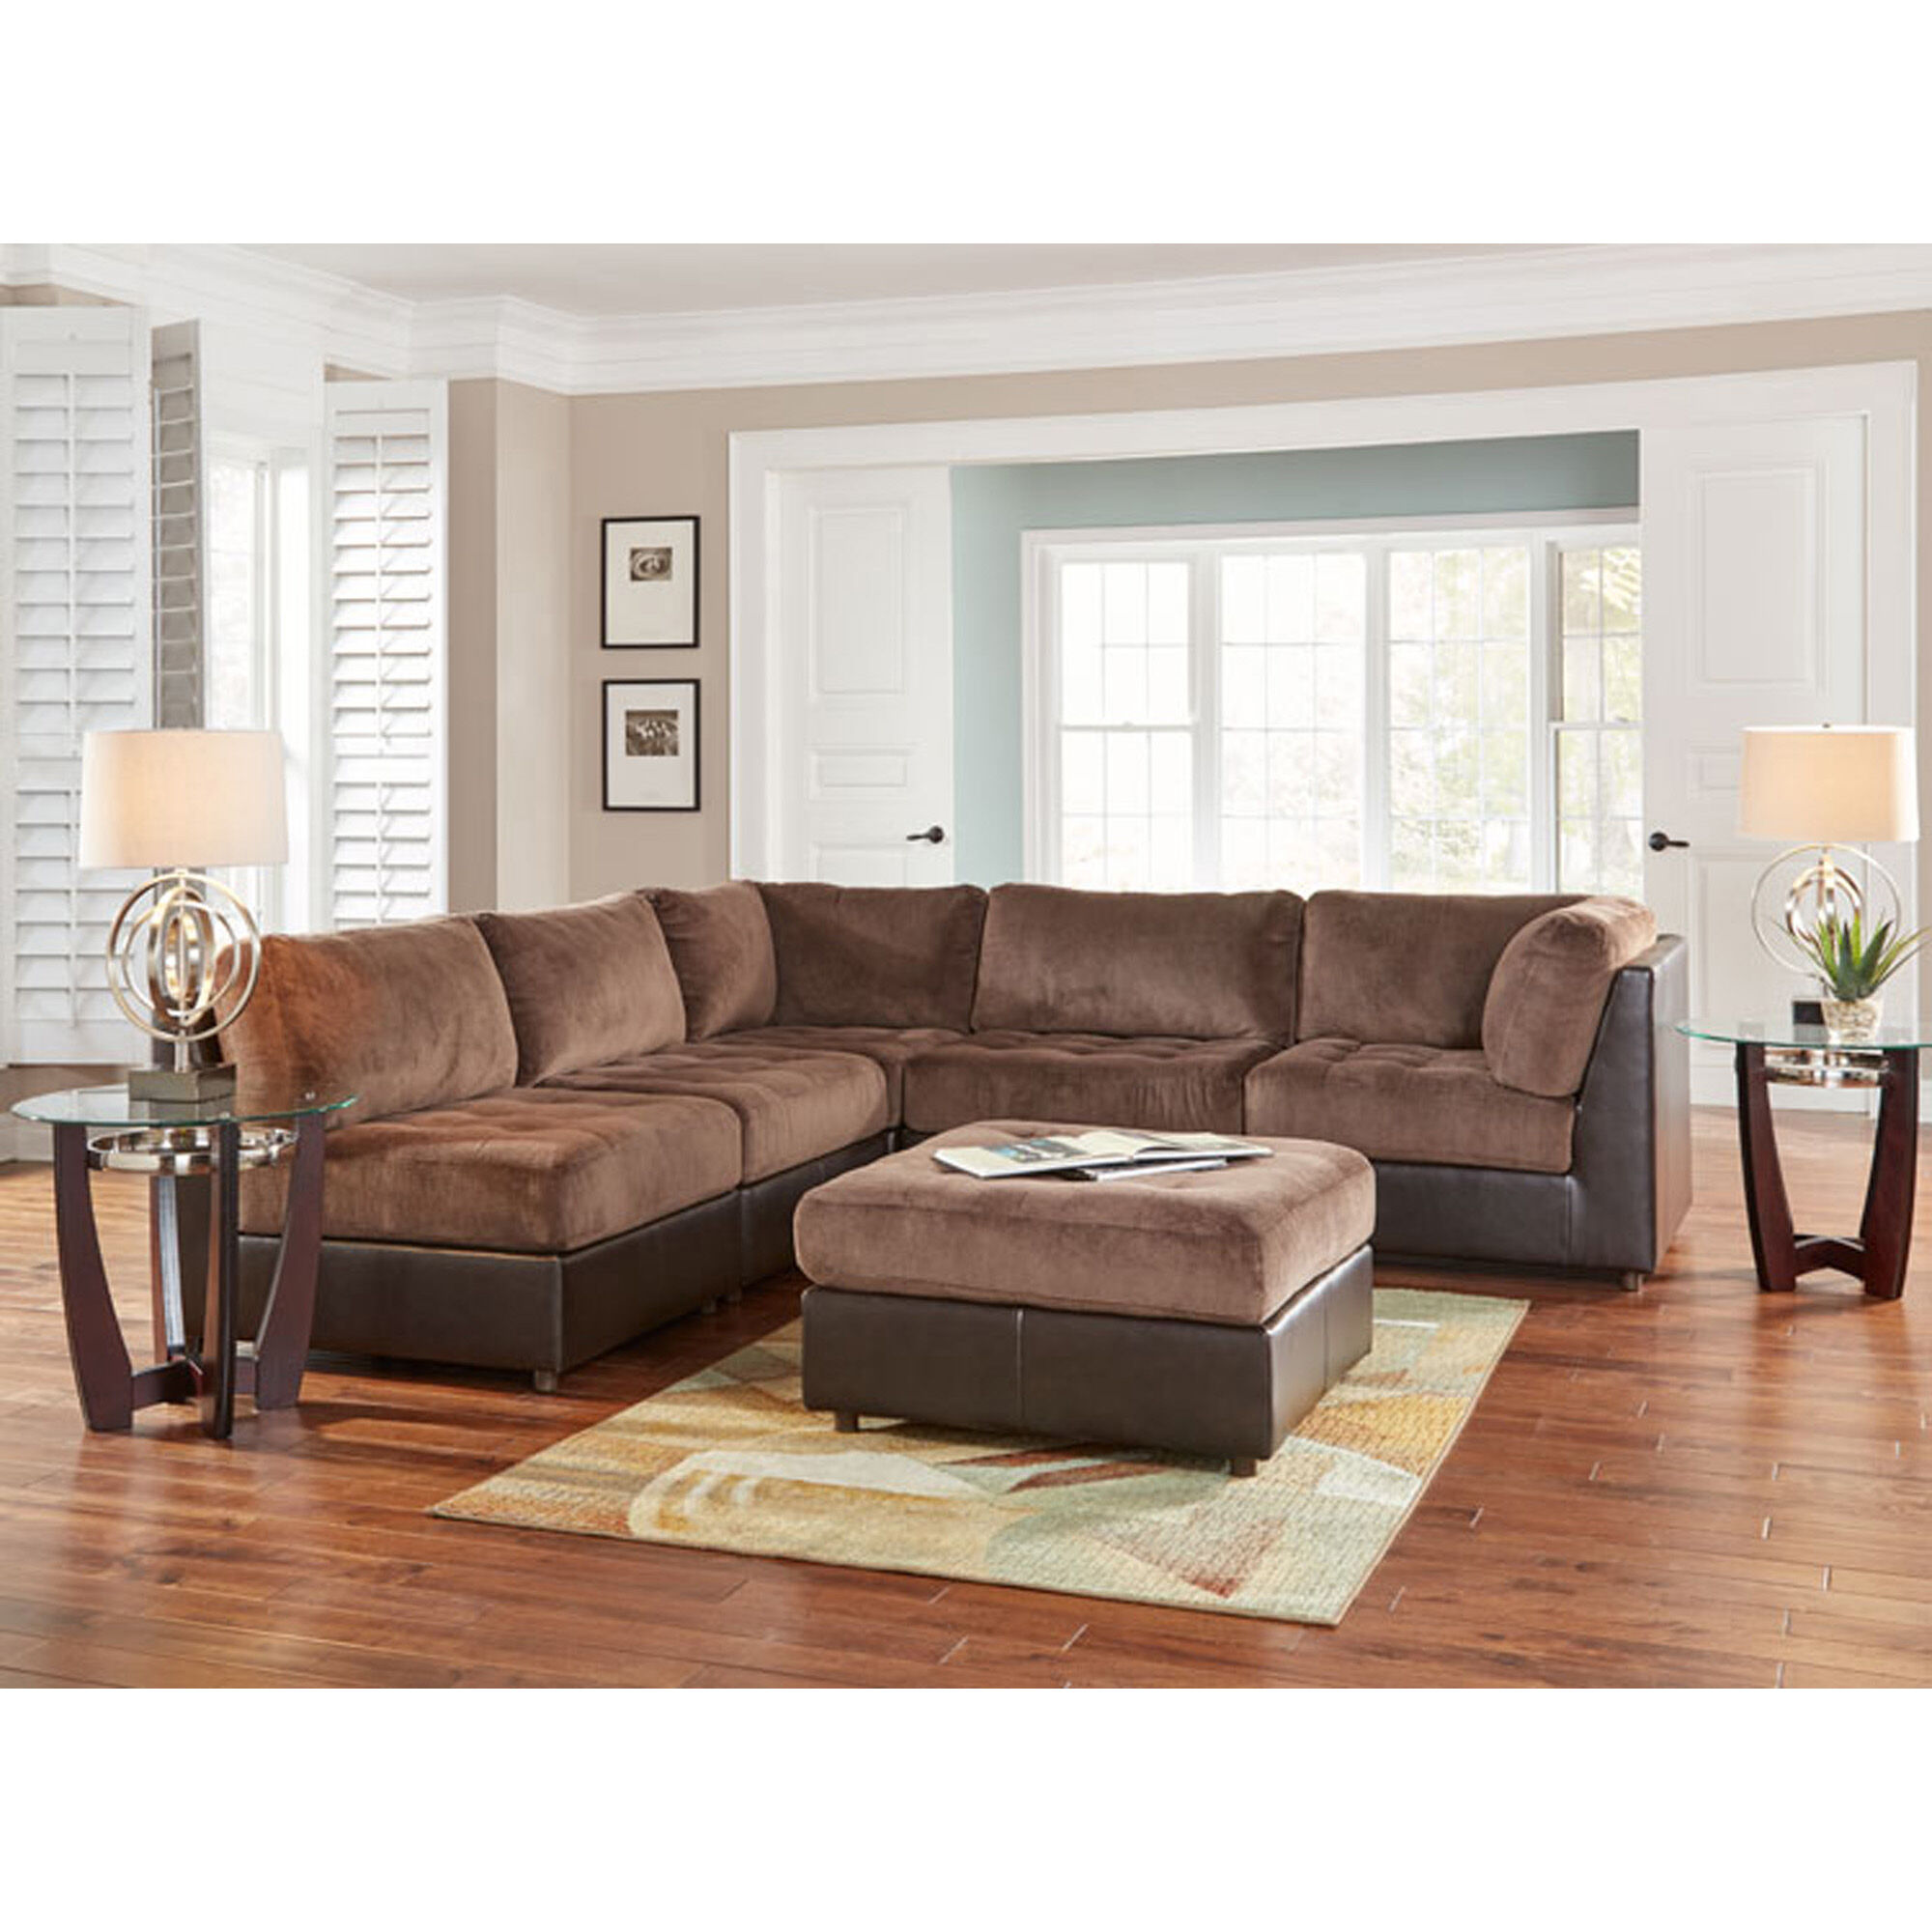 Small 2 Piece Sectional Sofa